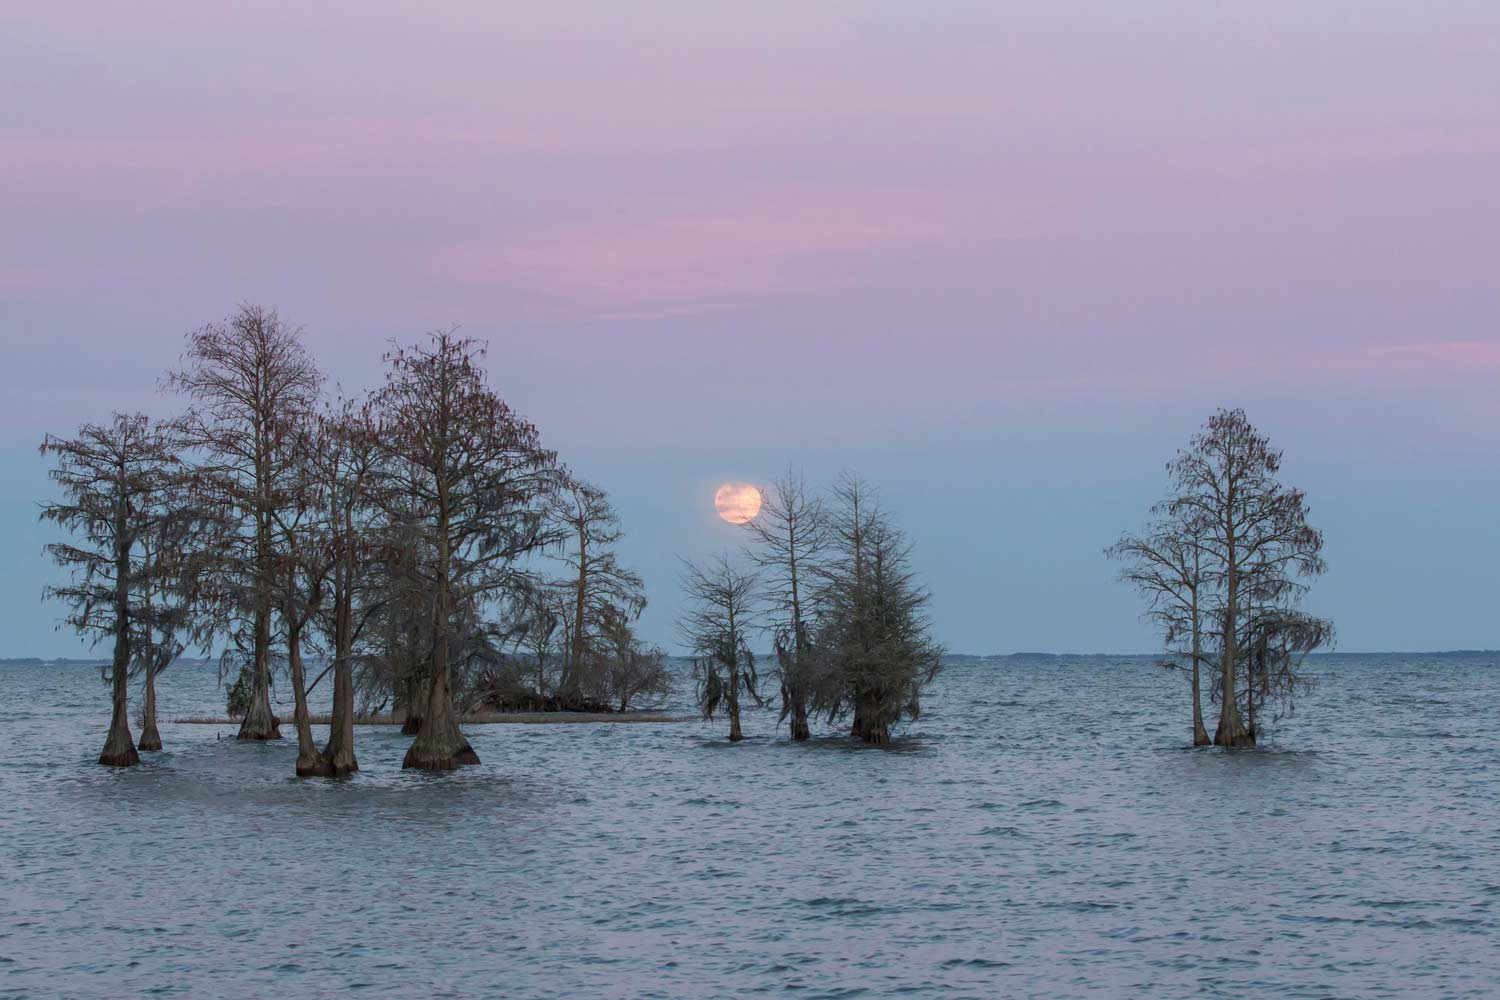 Lake Moultrie Cypress Bank